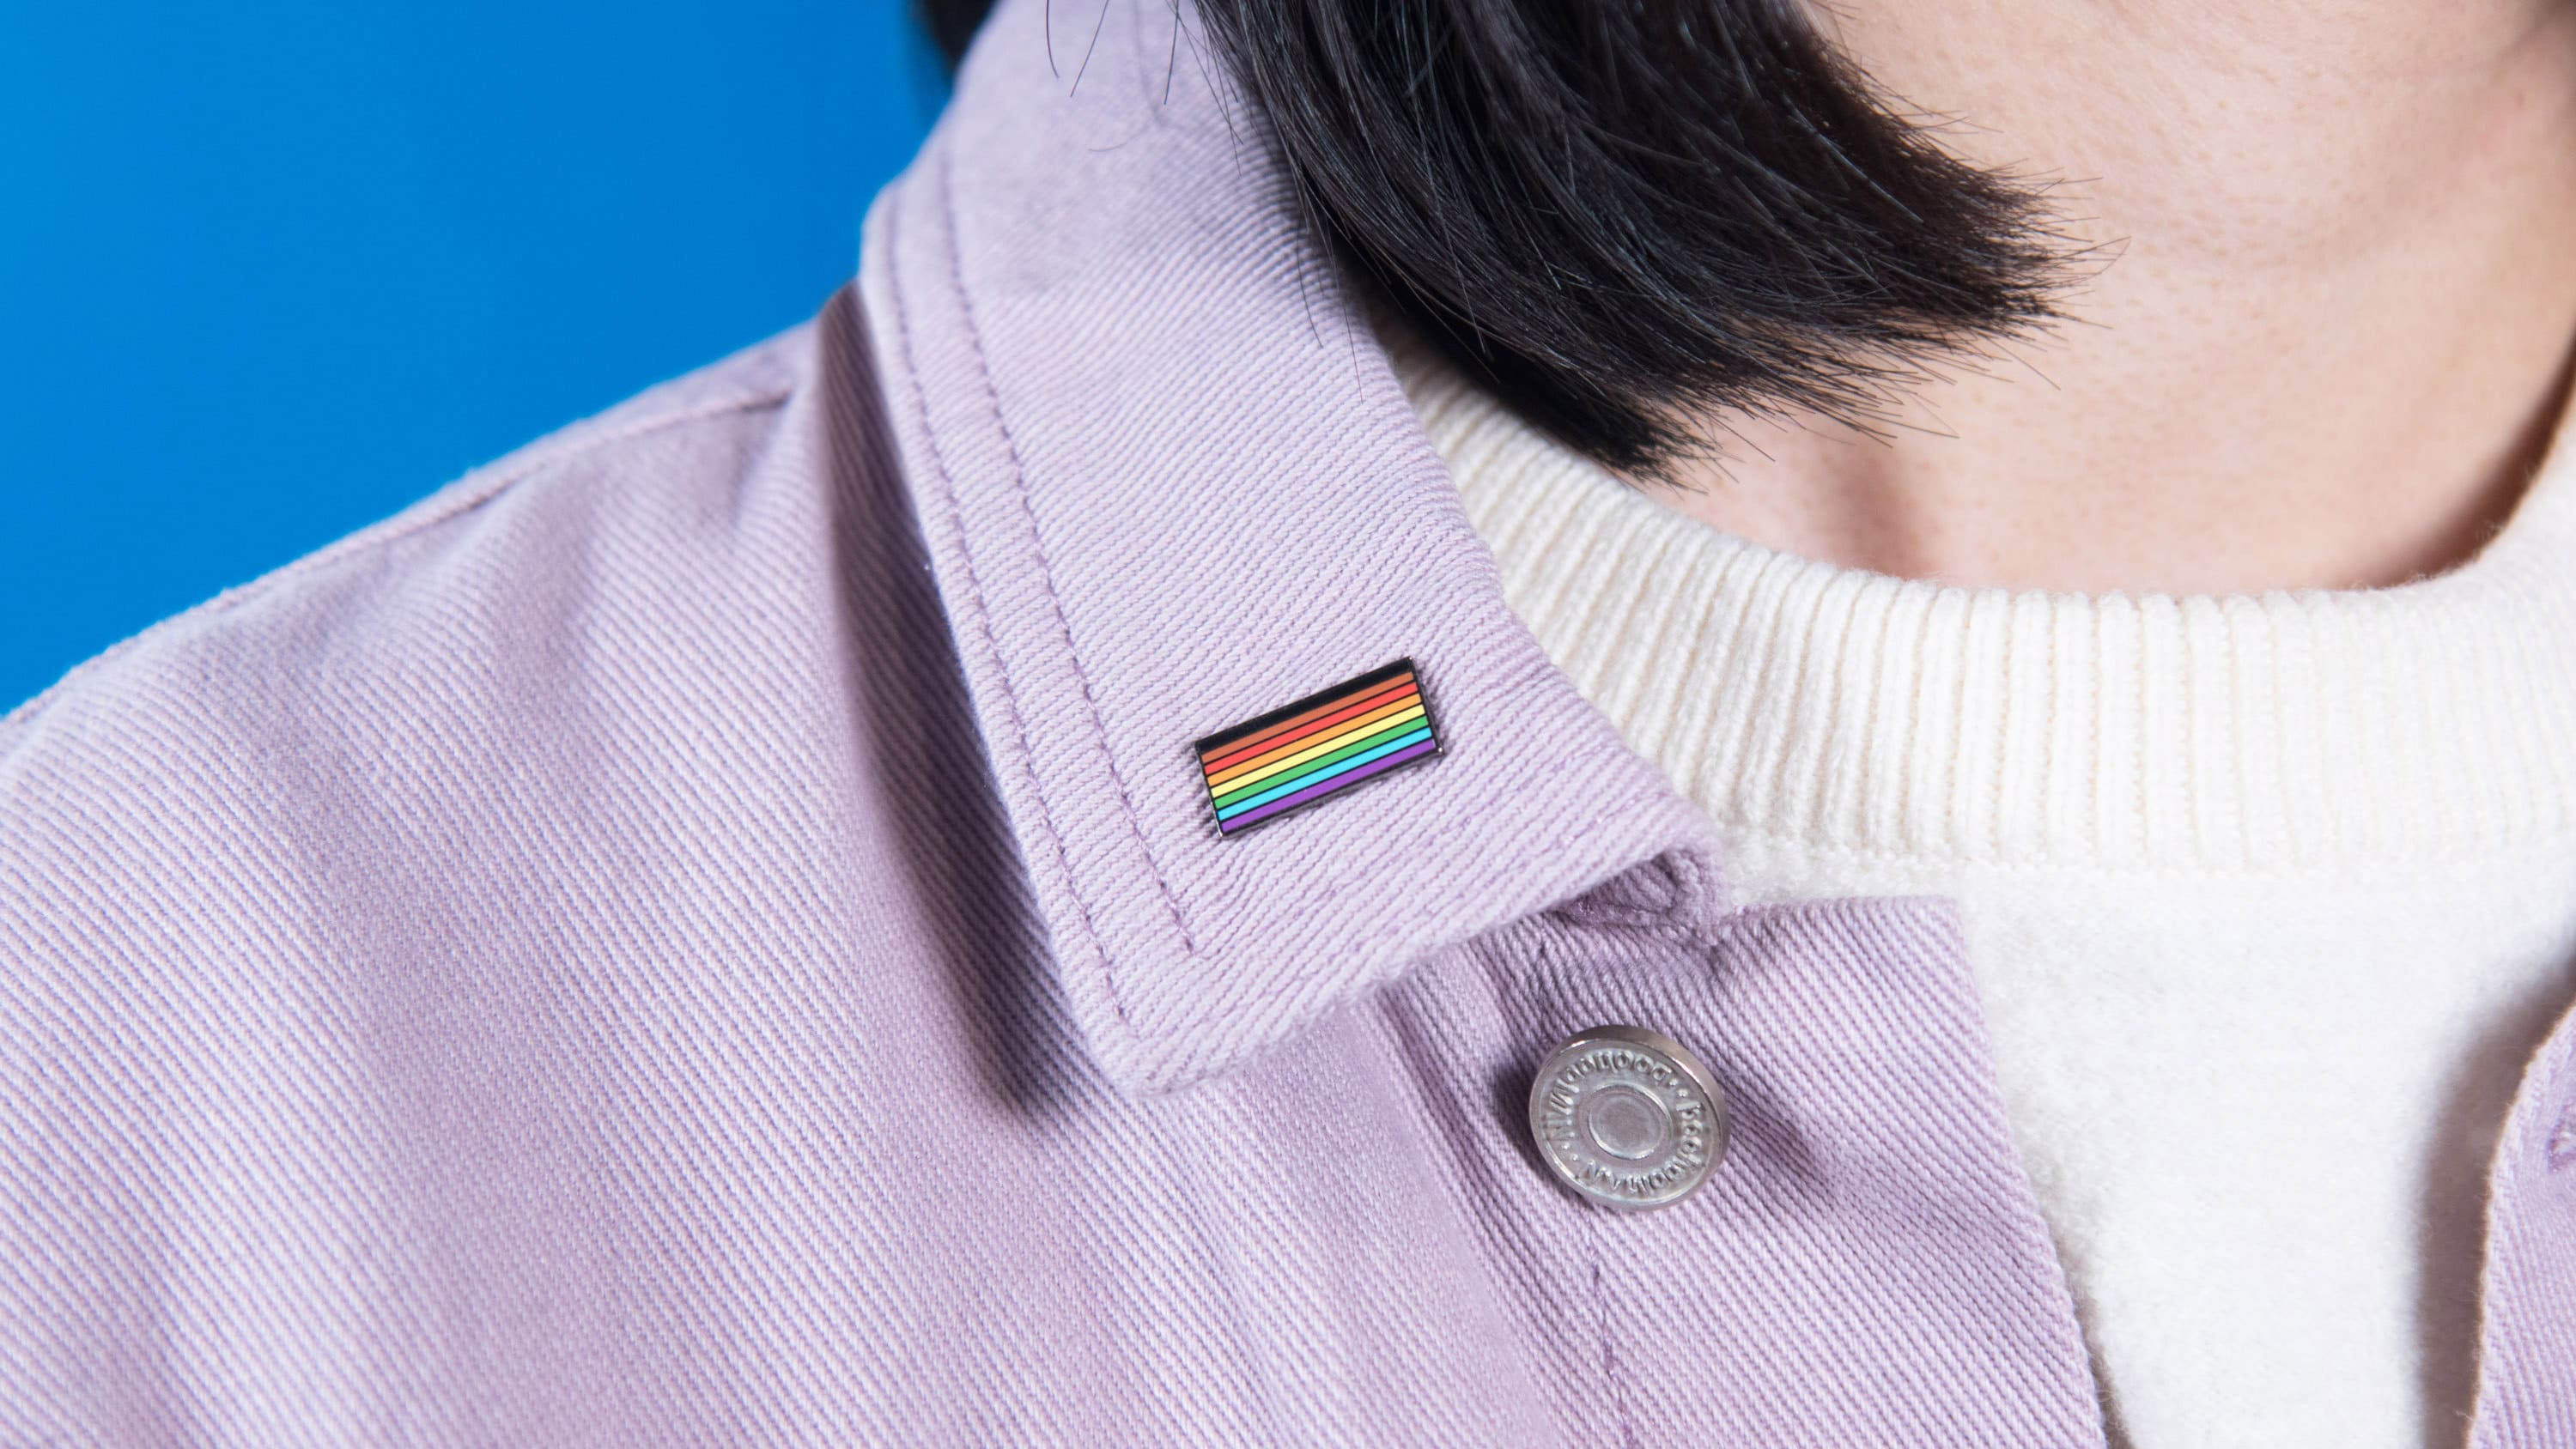 Inclusive Gay Rainbow Flag Enamel Pin Collar Lapel Badge